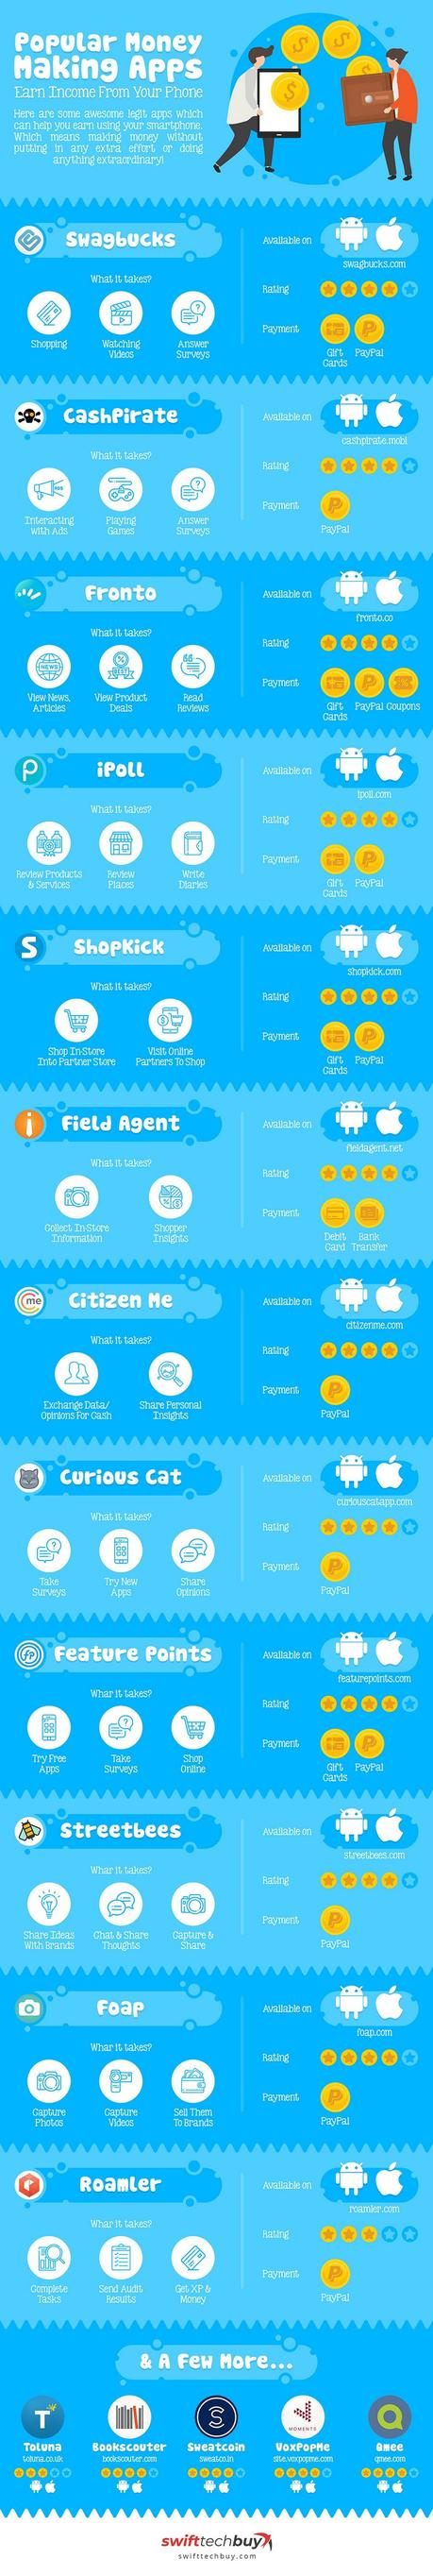 12 Apps For Earning Money With Your Smartphone [Infographic]